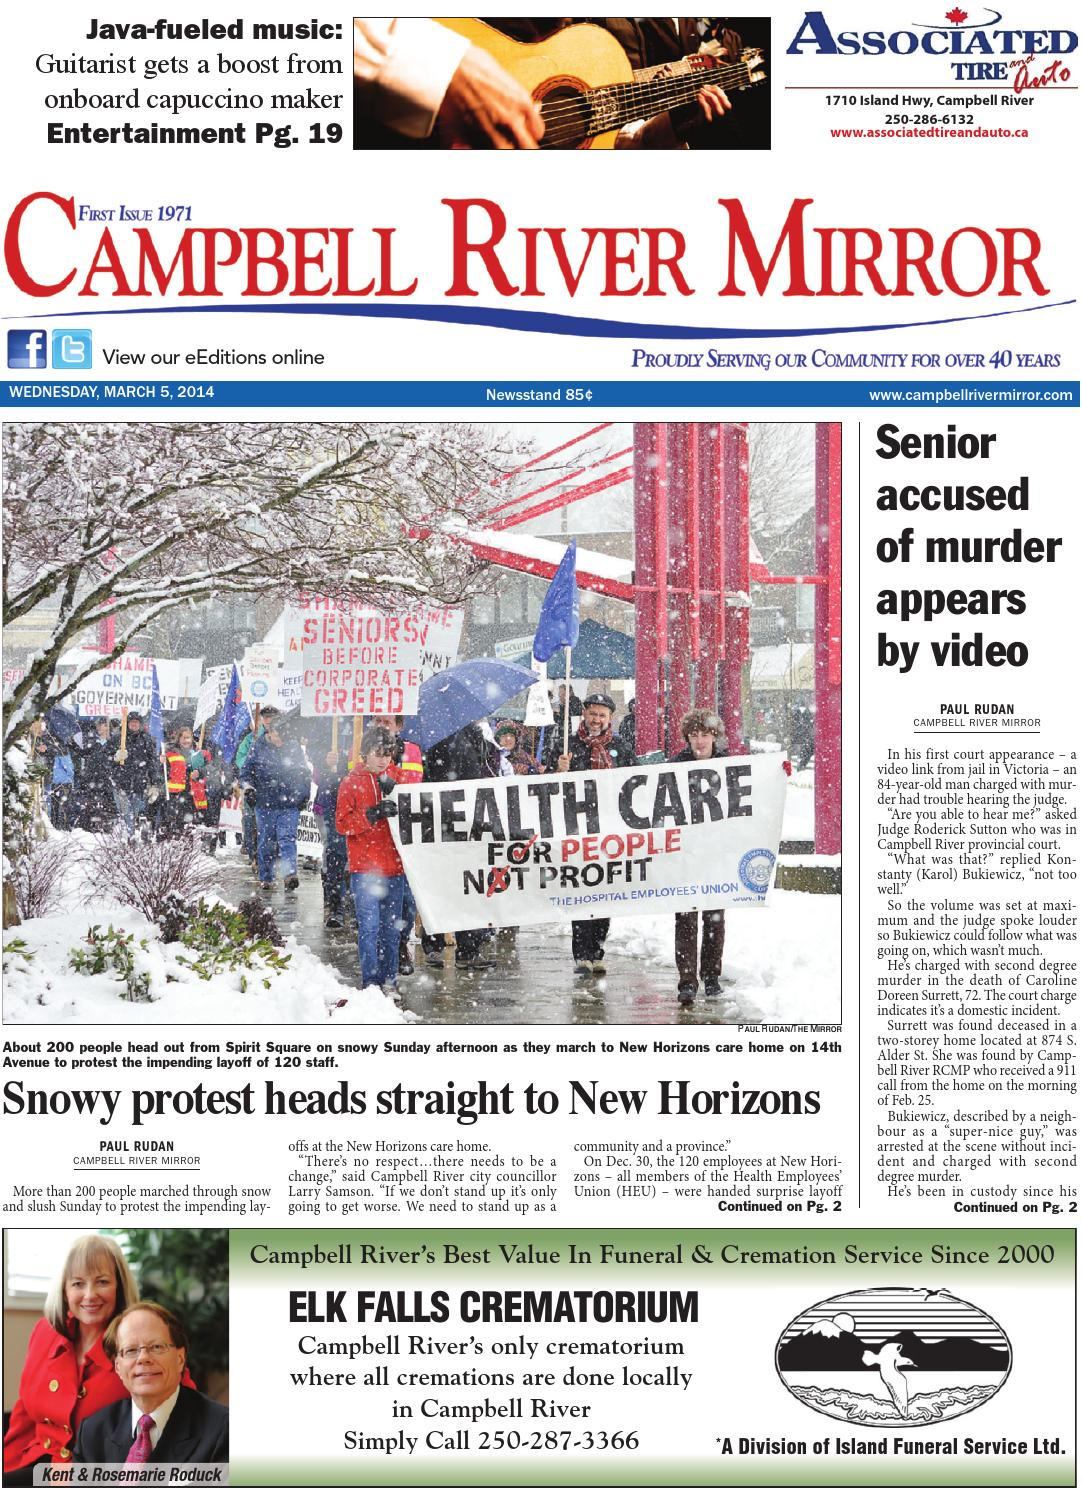 Campbell River Mirror, March 05, 2014